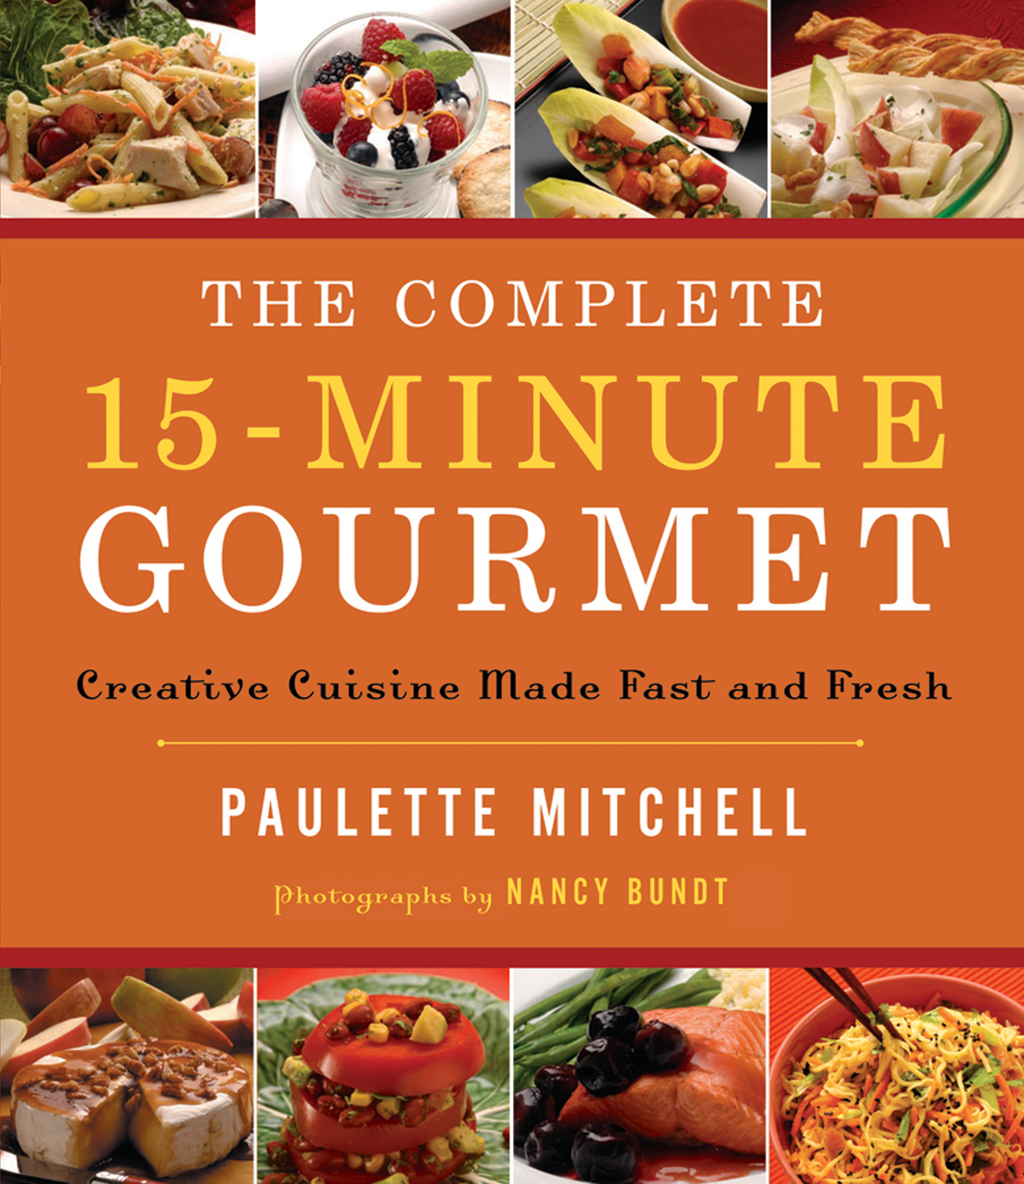 The Complete 15-Minute Gourmet